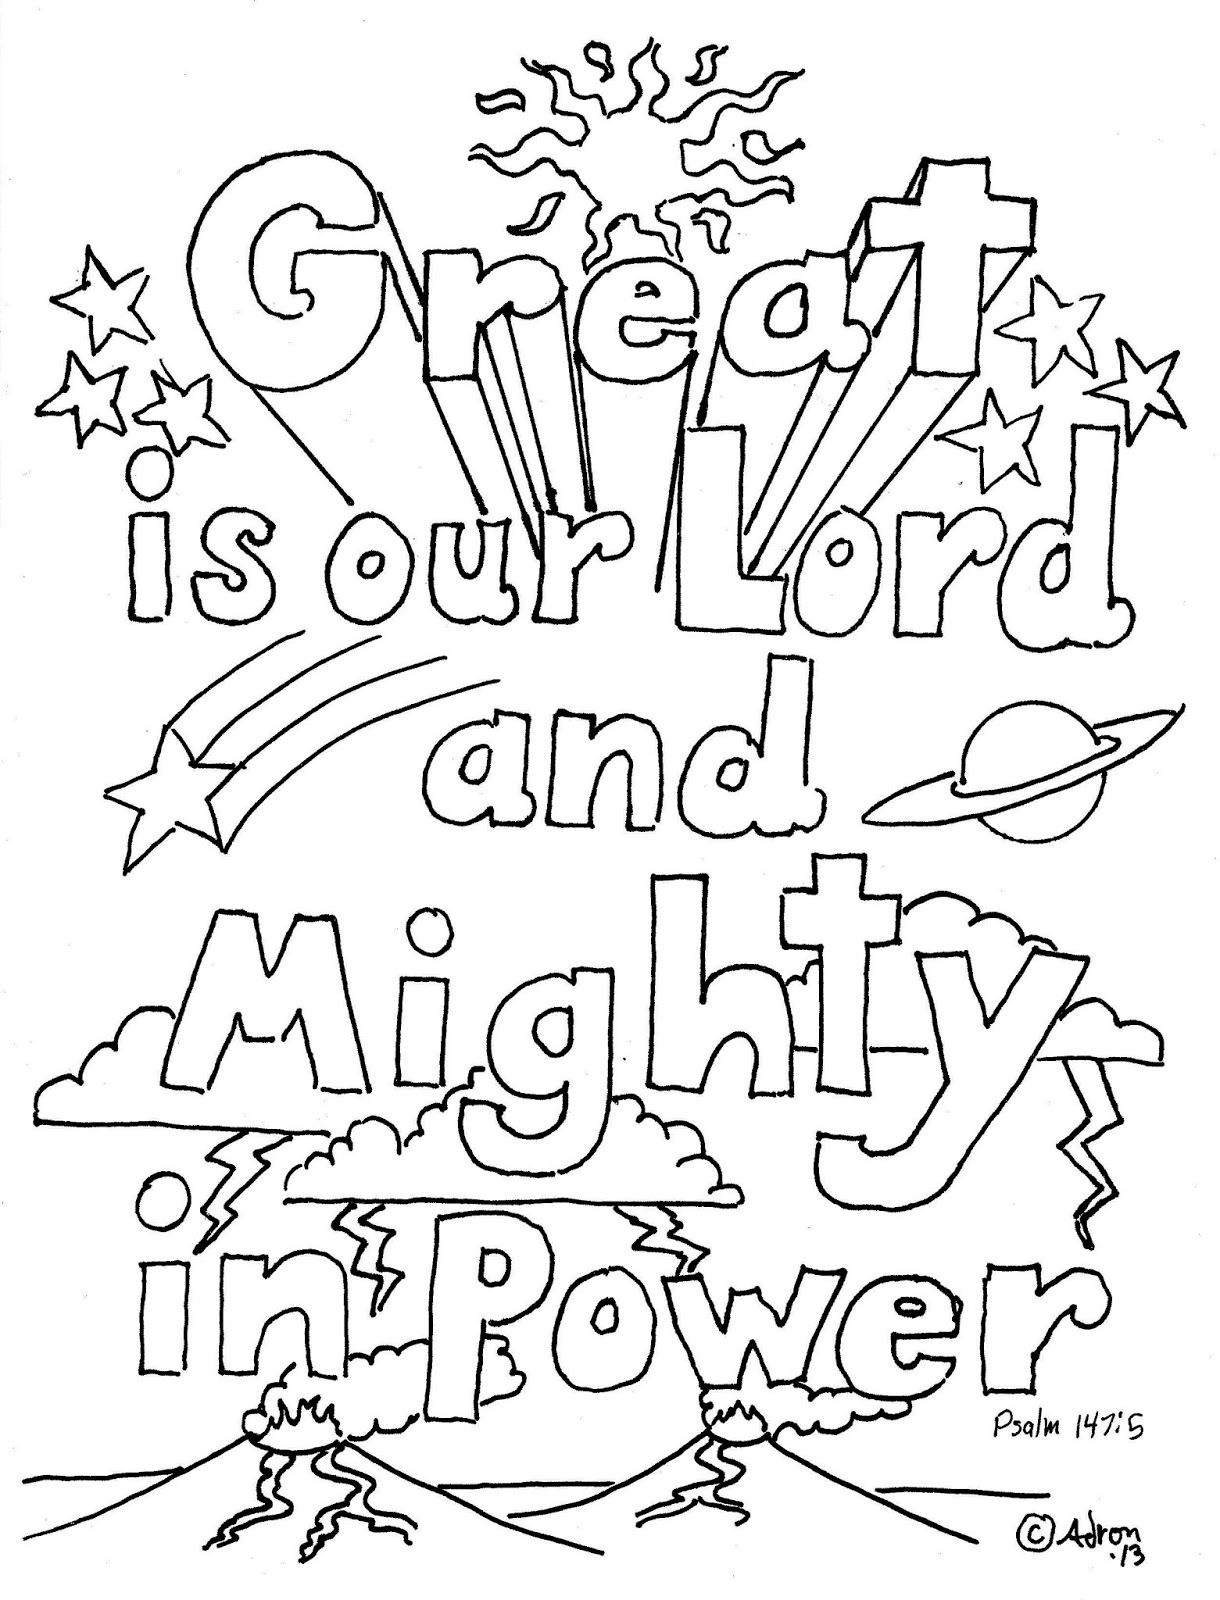 free awana sparks coloring pages | Mighty in Power | Sunday school coloring pages, Bible ...